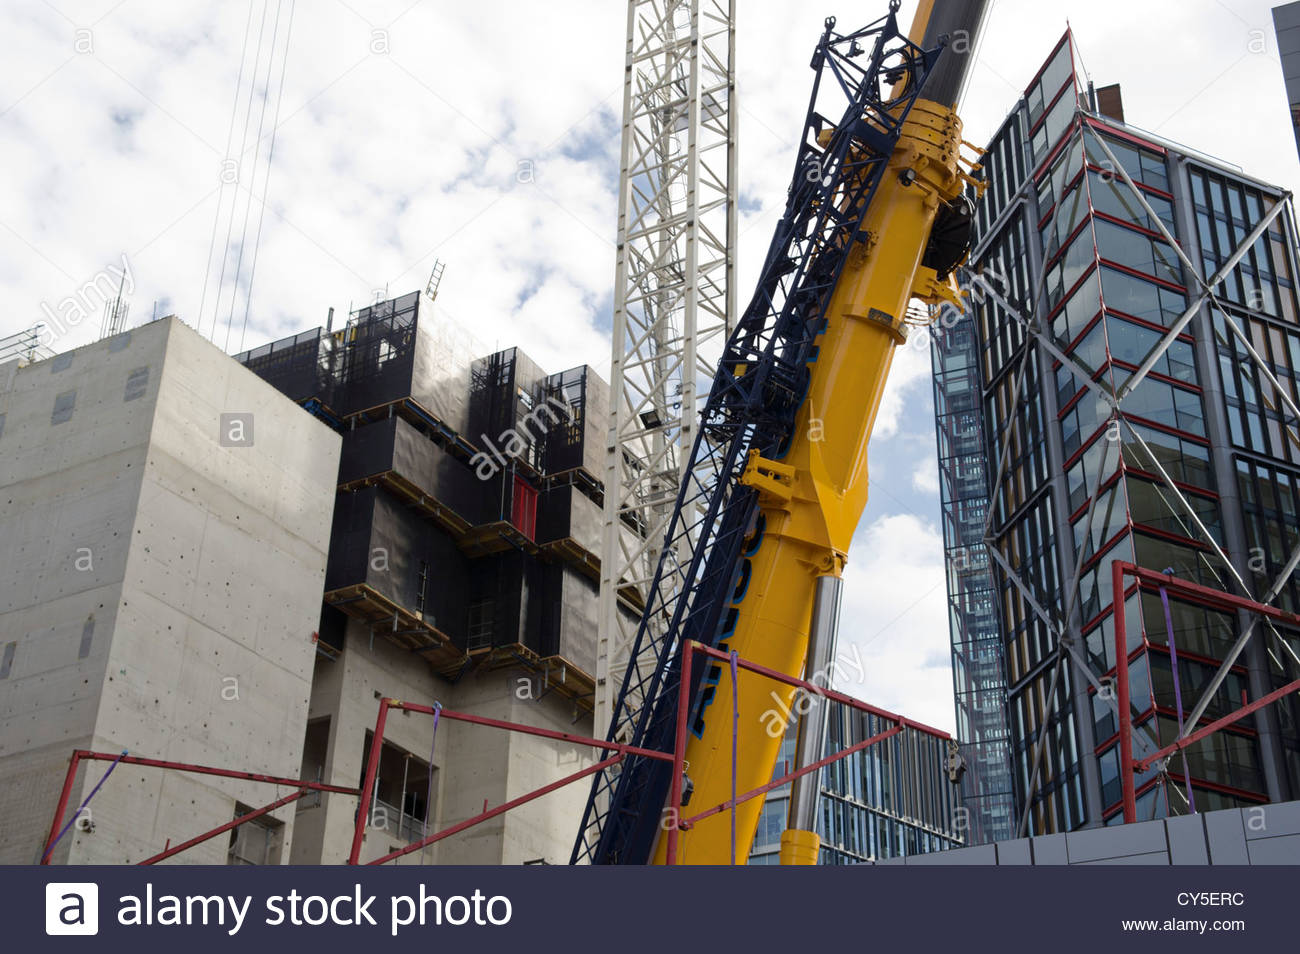 Construction in Southwark, London - Stock Image